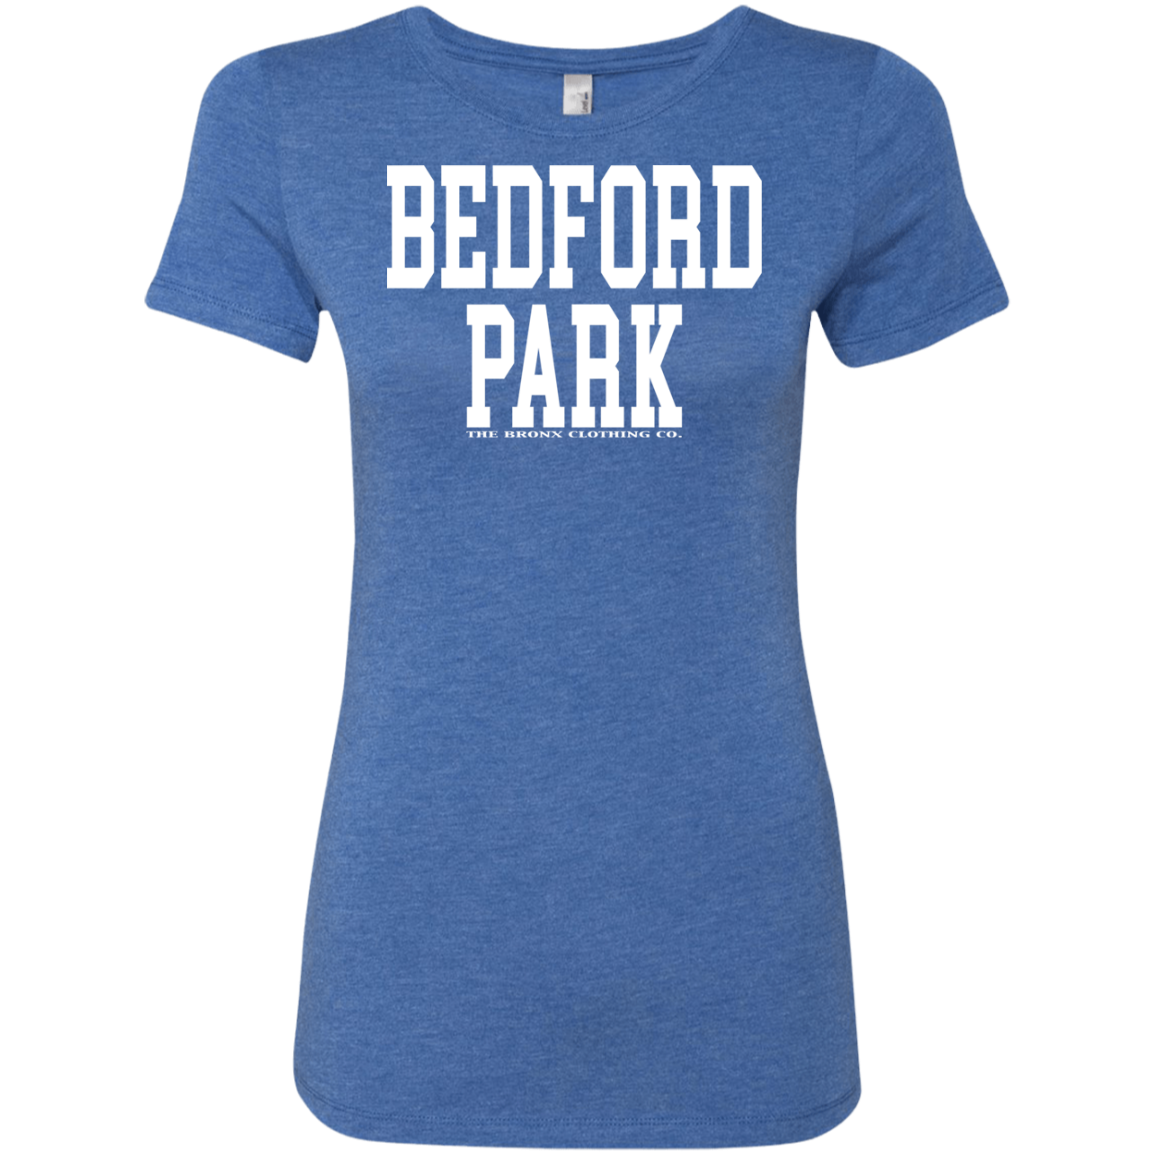 Bedford Park - Neighborhood Series